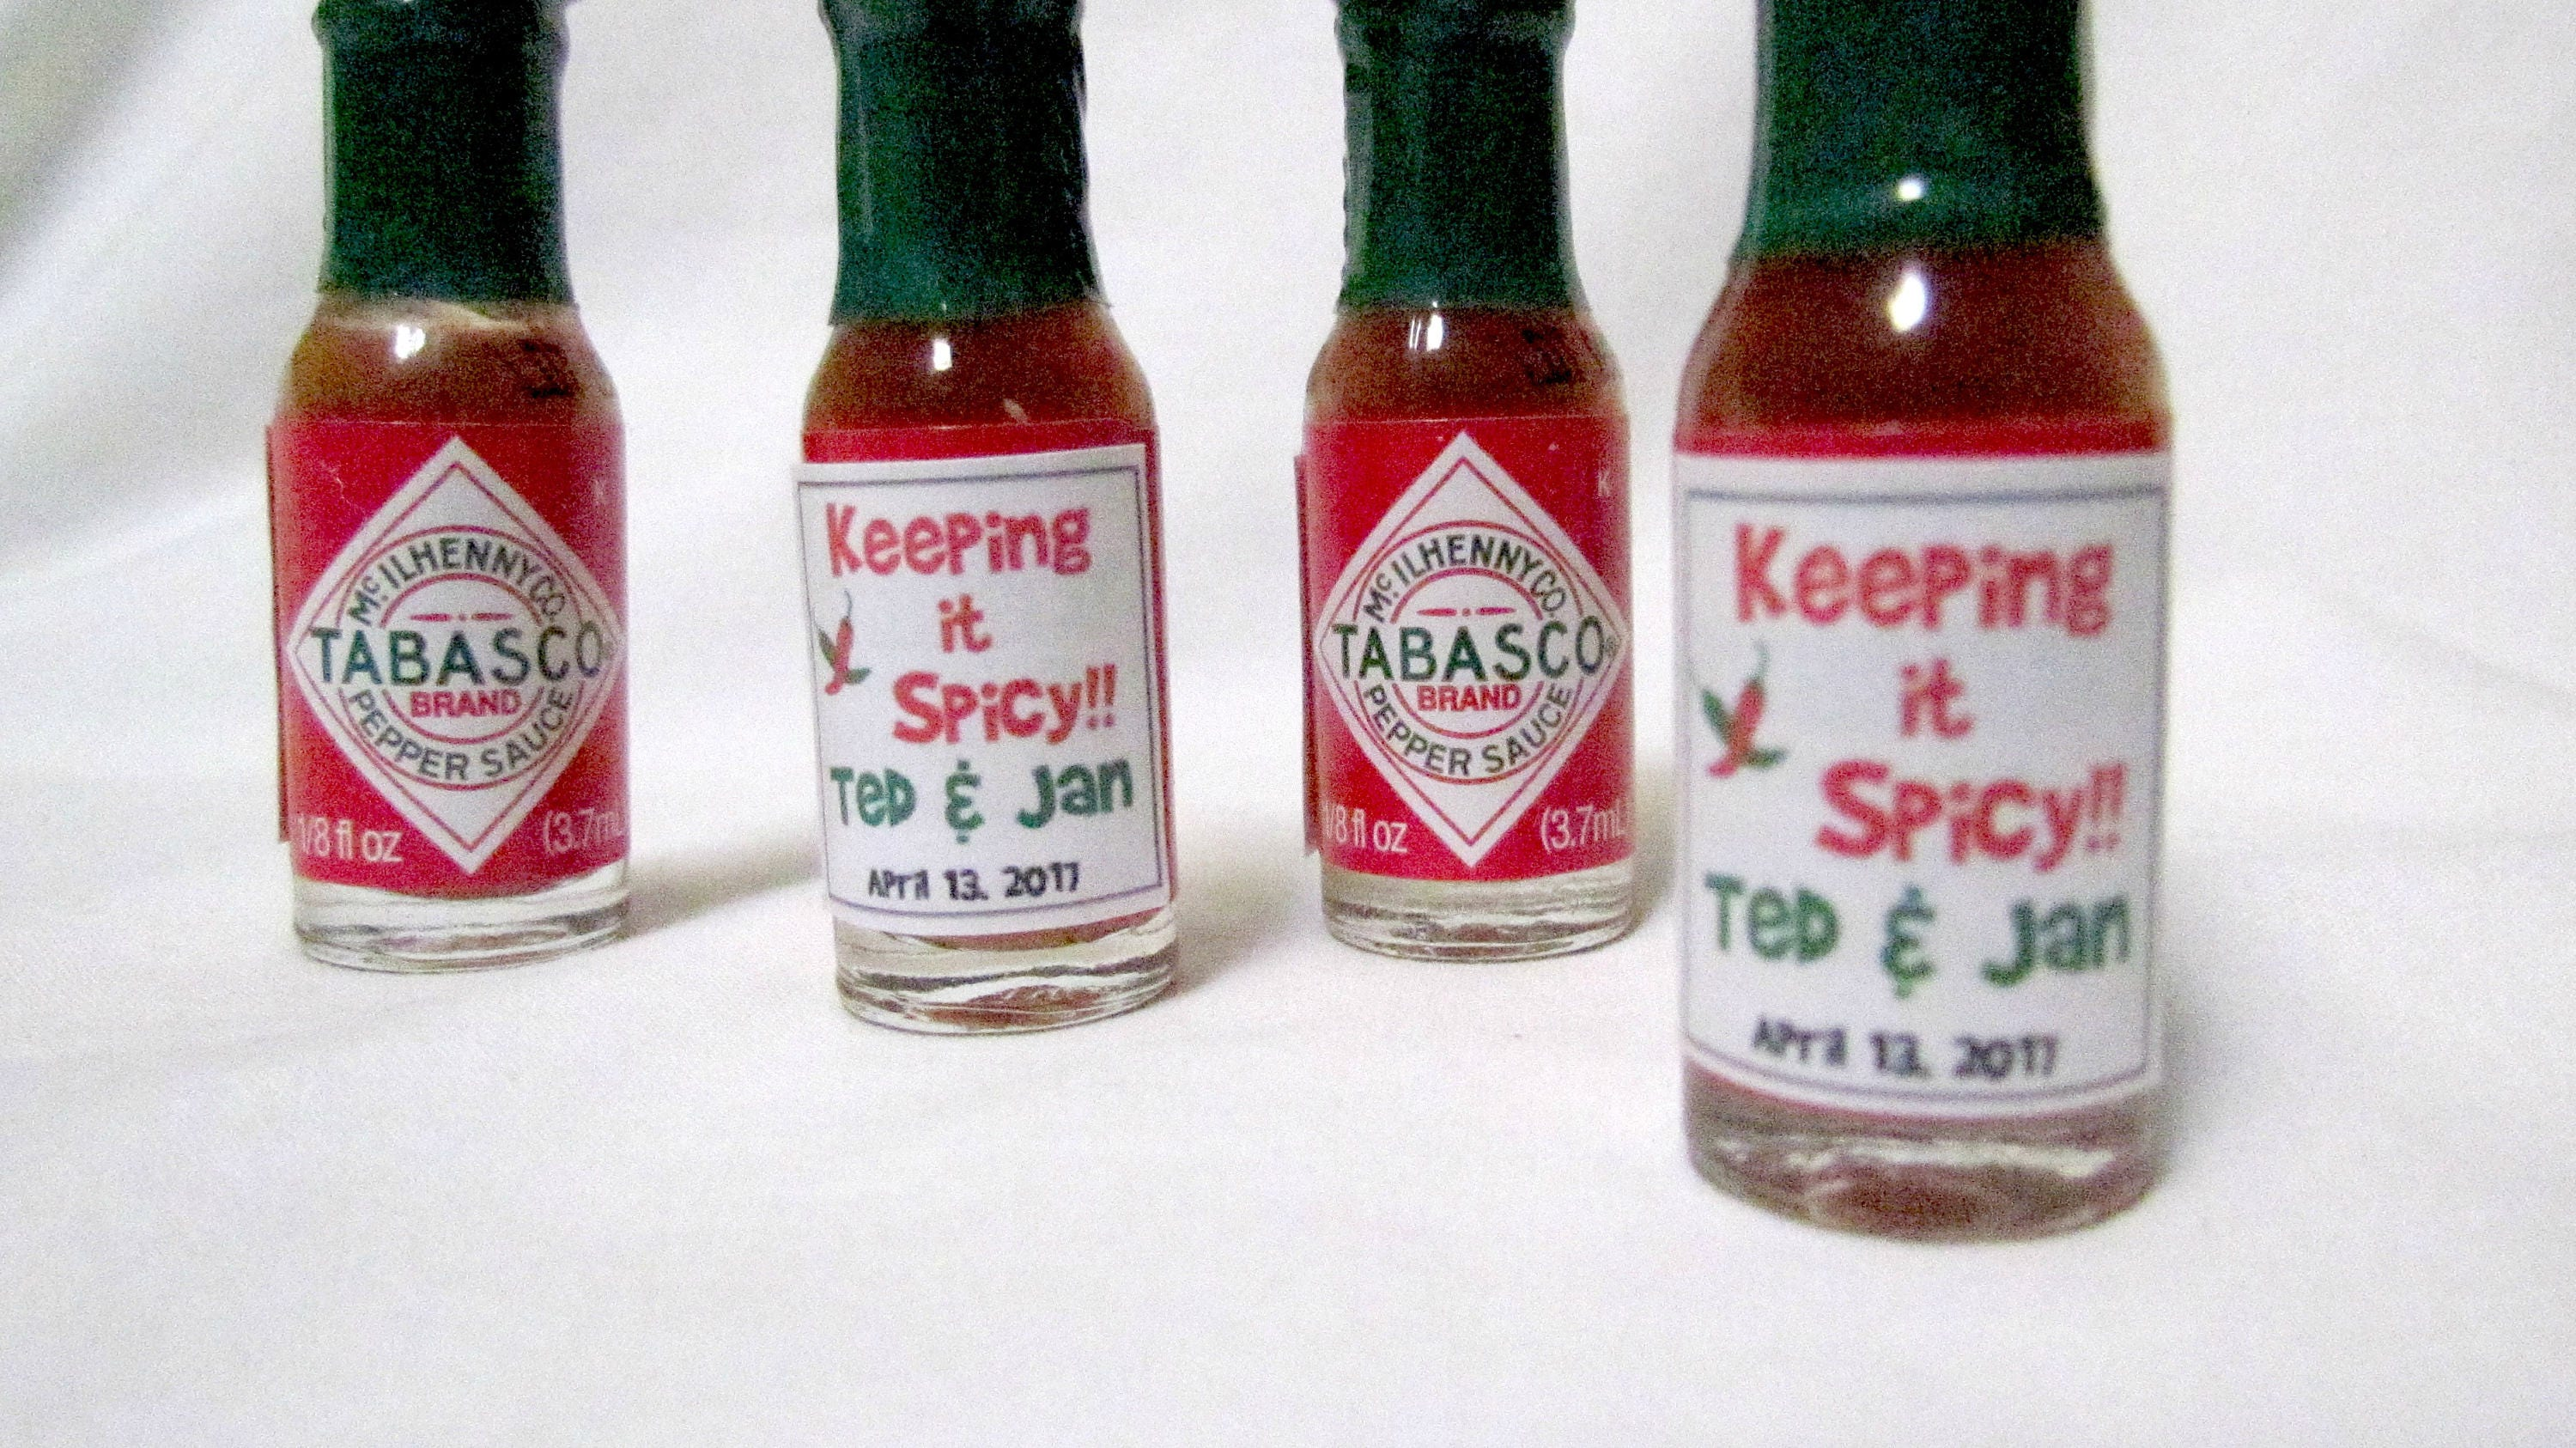 Personalized Mini Tabasco Sauce Keeping It Spicy Wedding